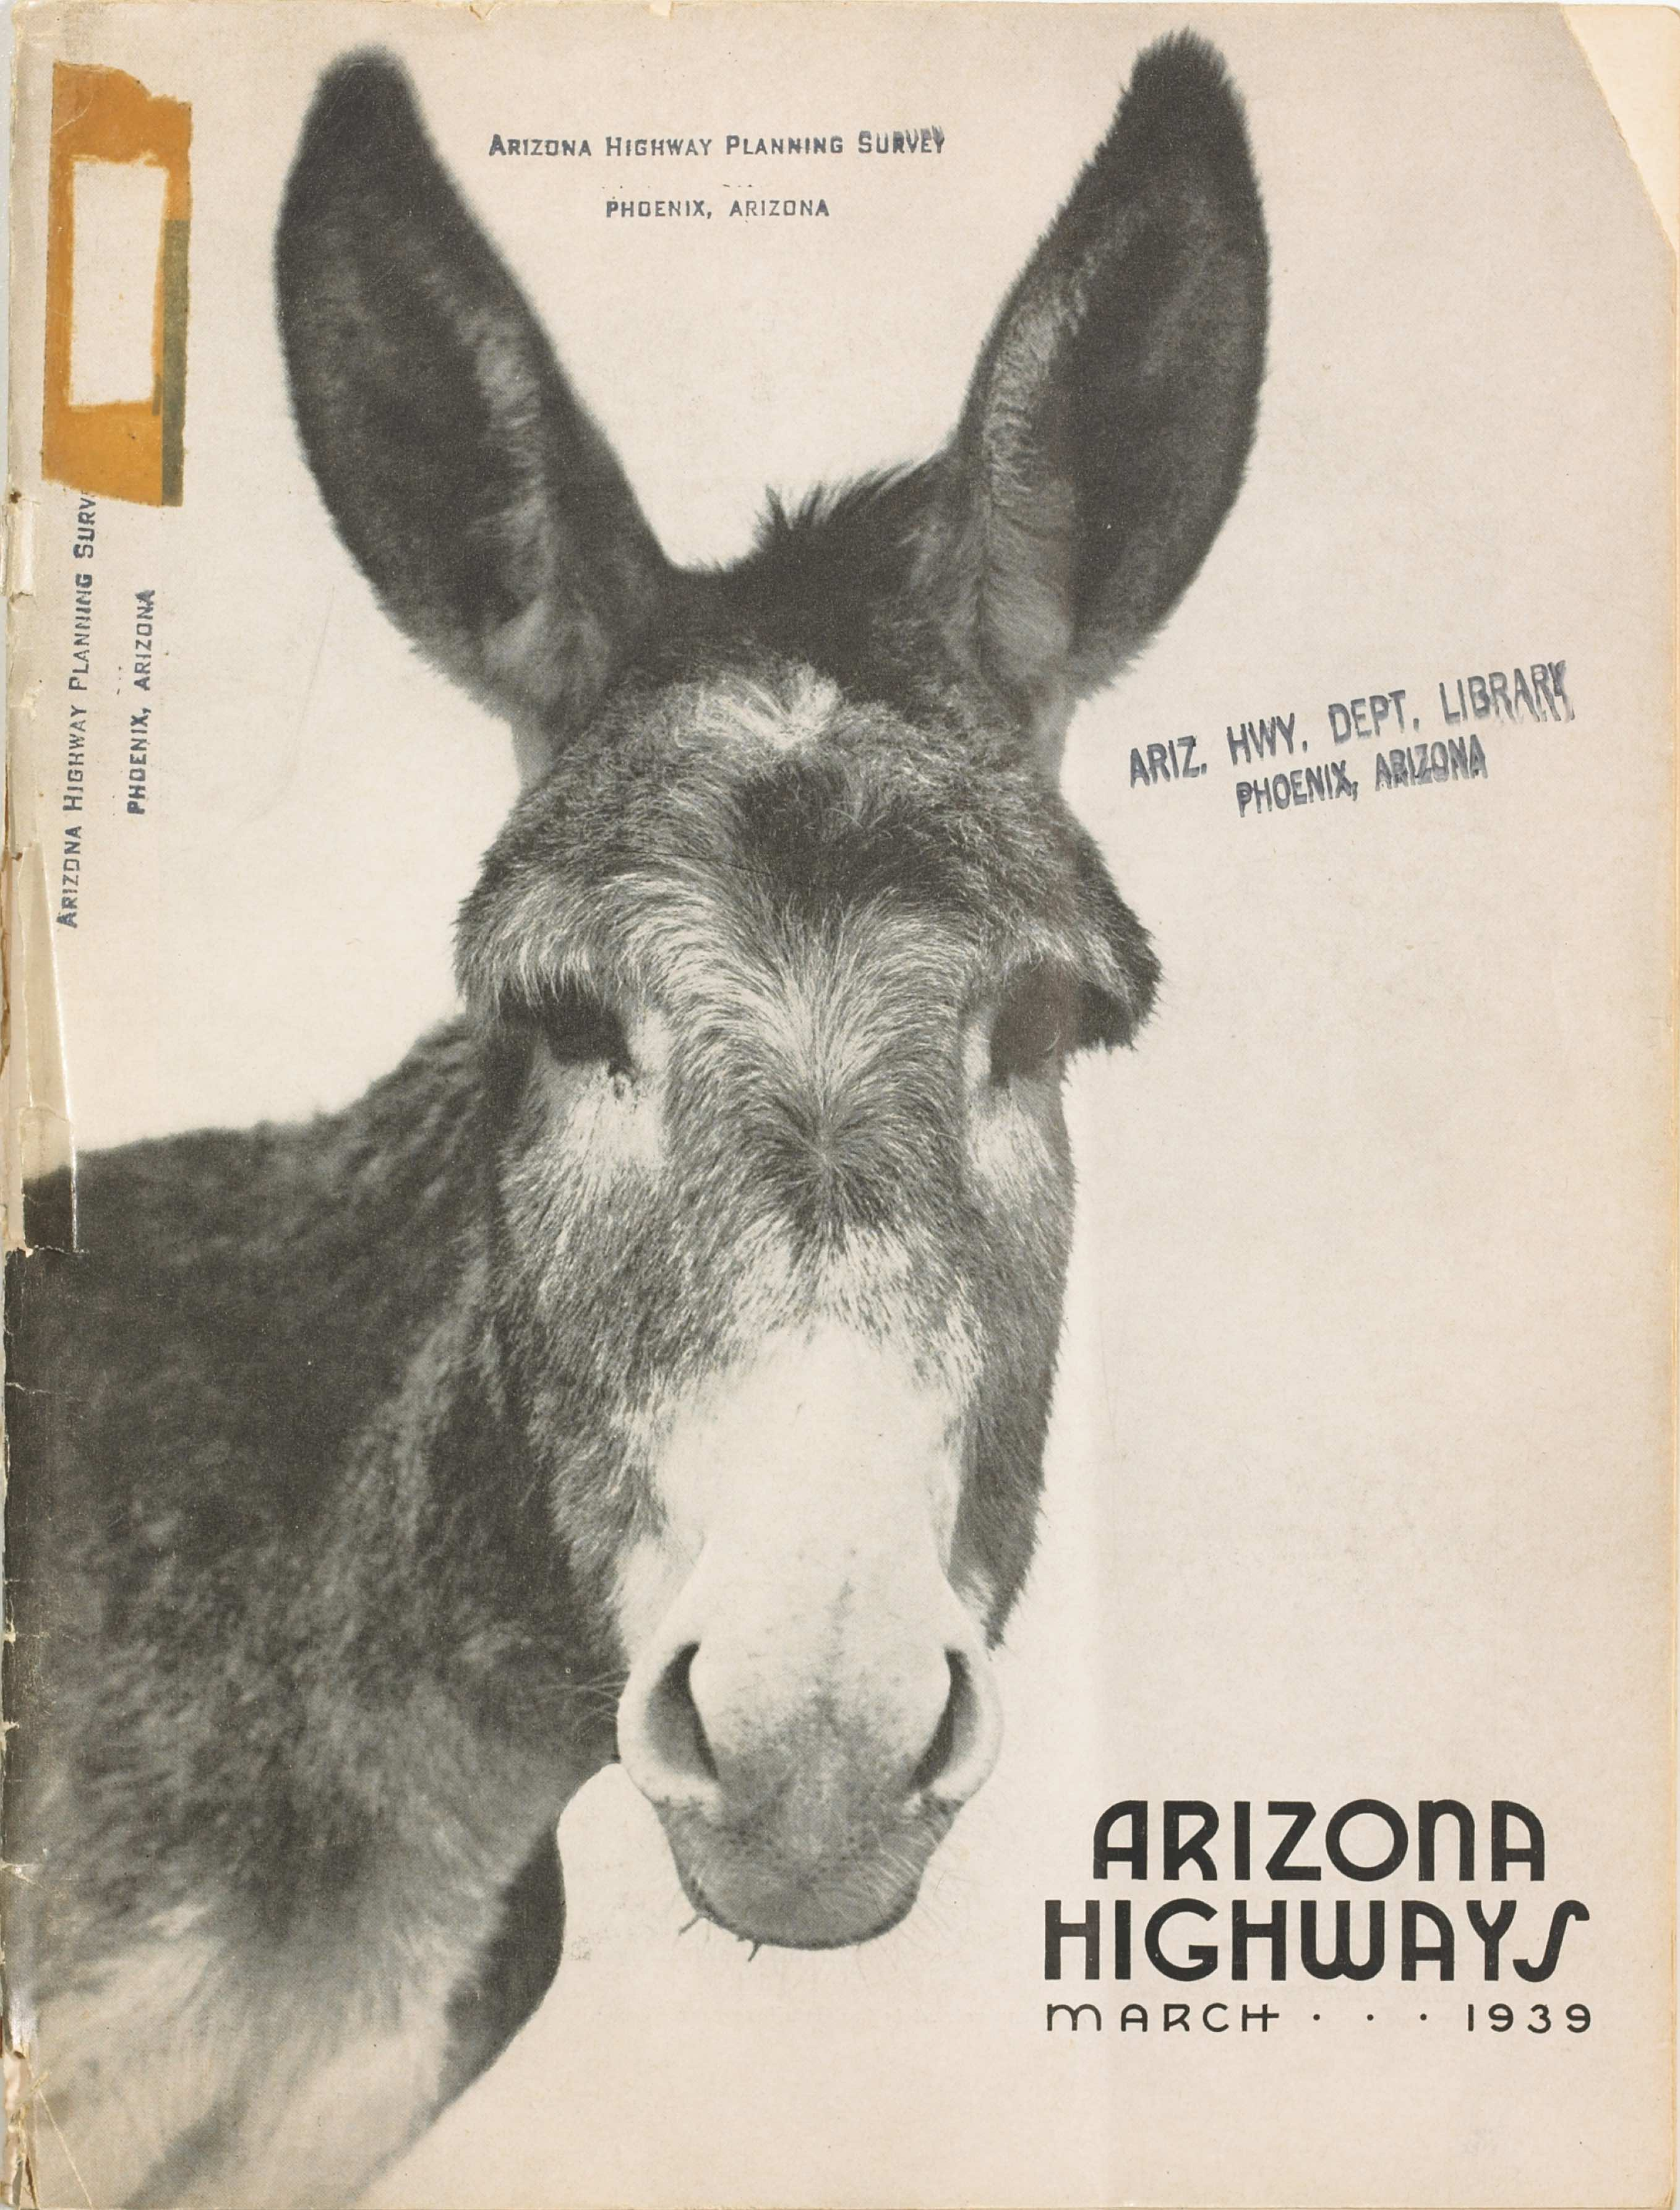 Arizona Highways March 1939 cover